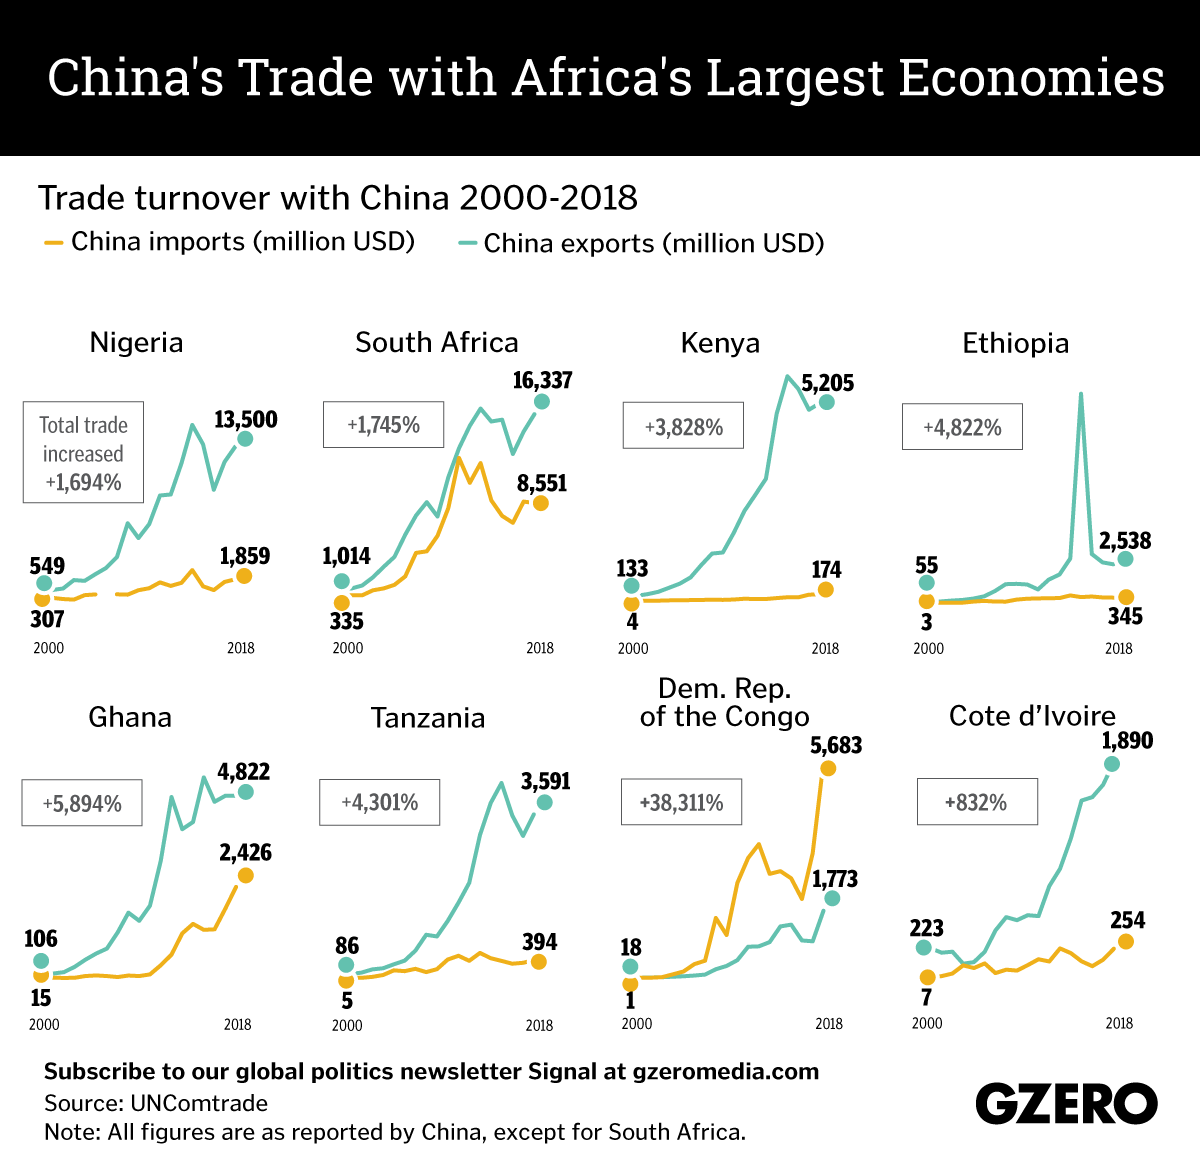 The Graphic Truth: China's trade with Africa's largest economies